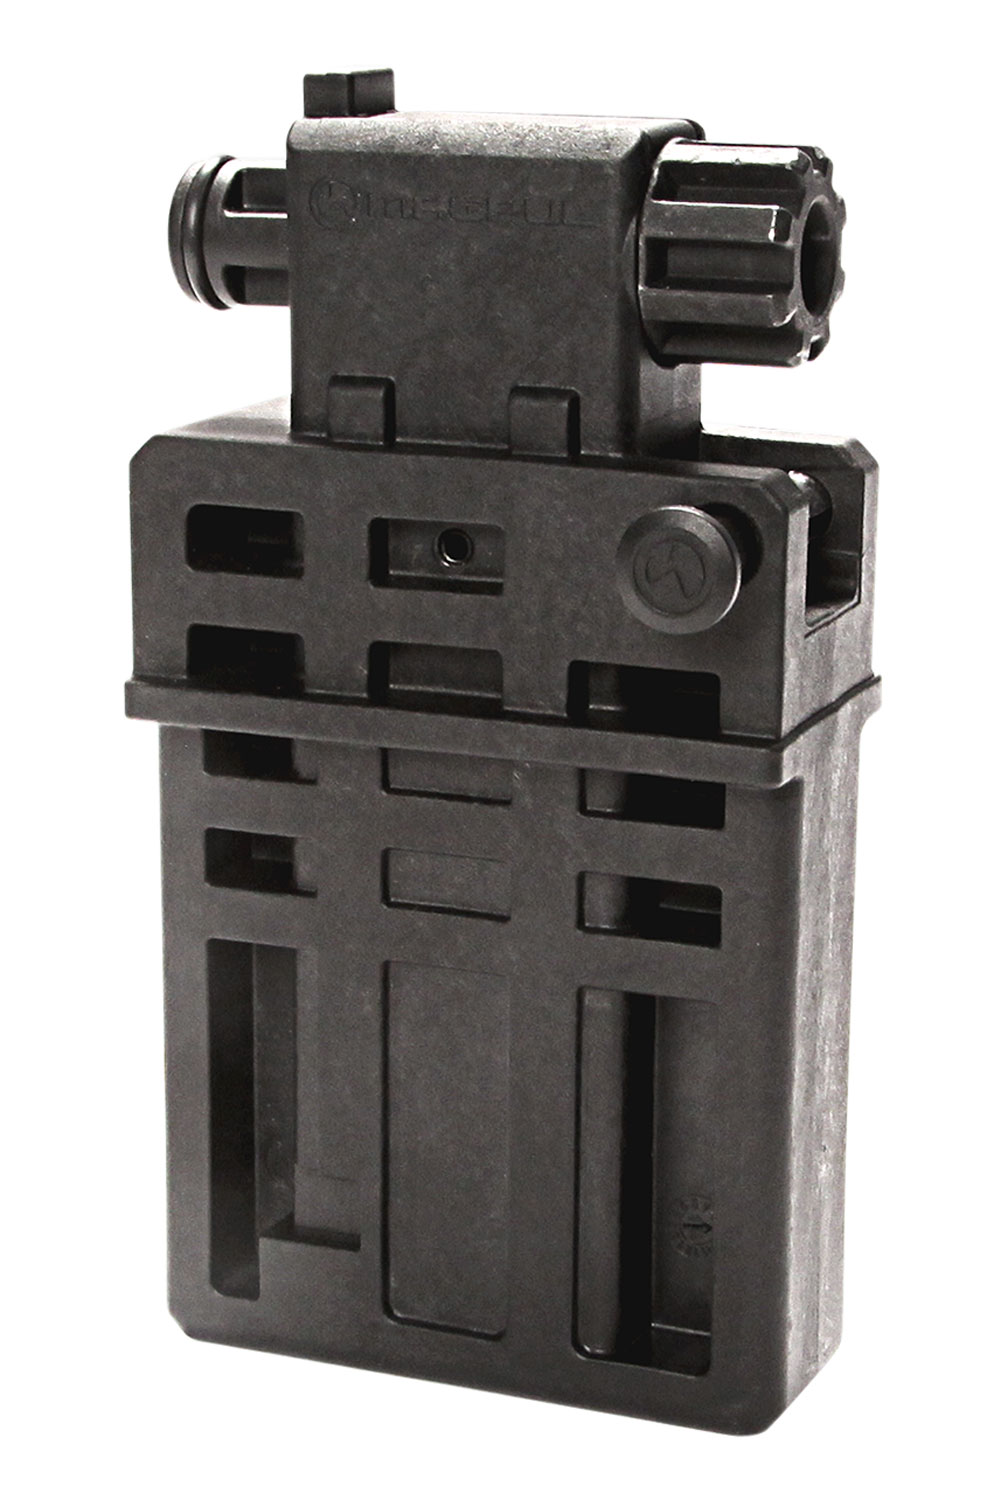 MAGPUL BEV BLOCK ARMORERS TOOL BARREL EXTENSION VISE